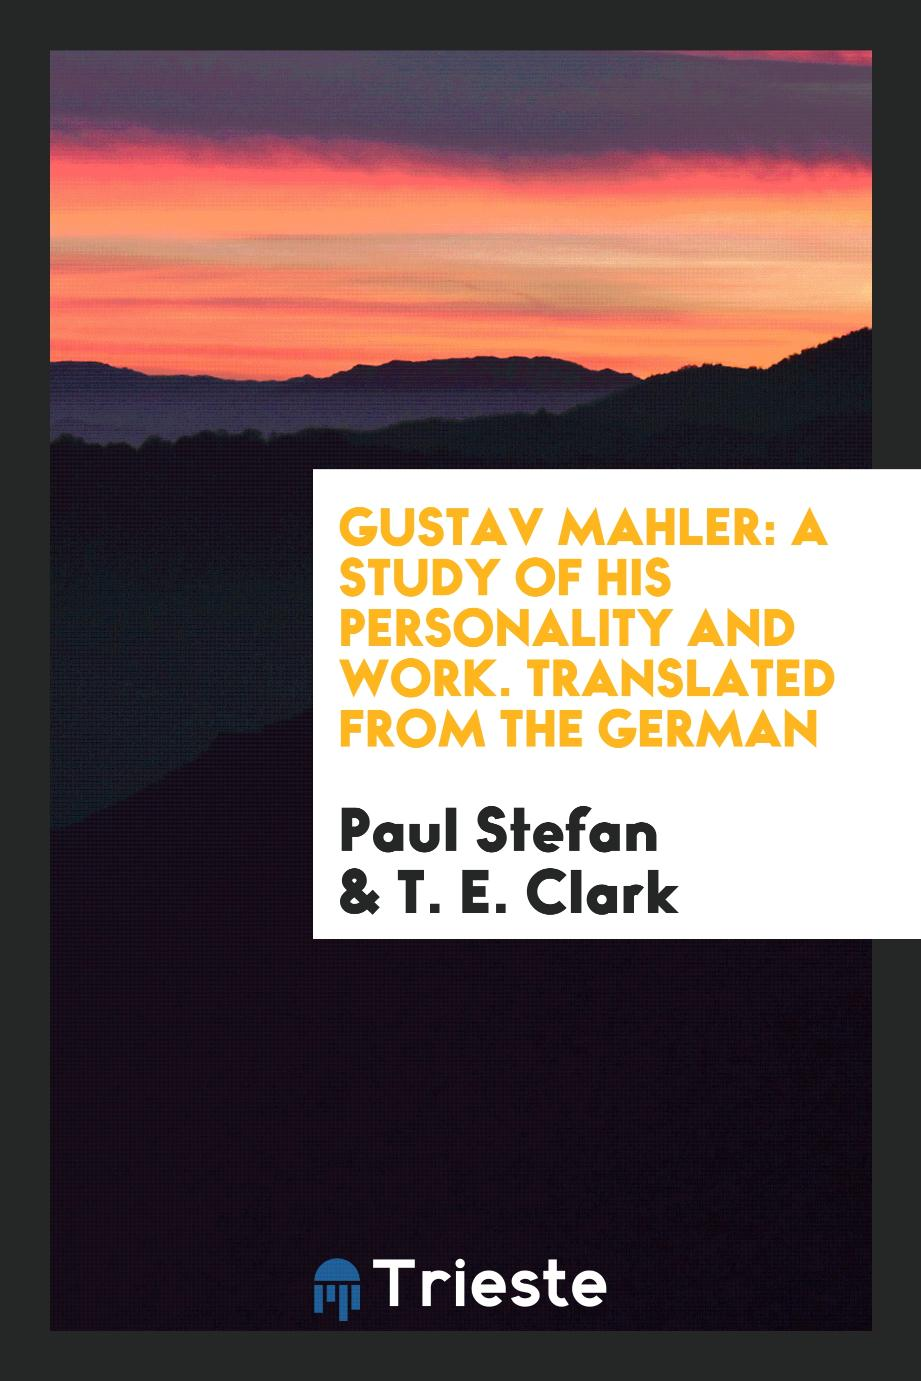 Gustav Mahler: A Study of His Personality and Work. Translated from the German